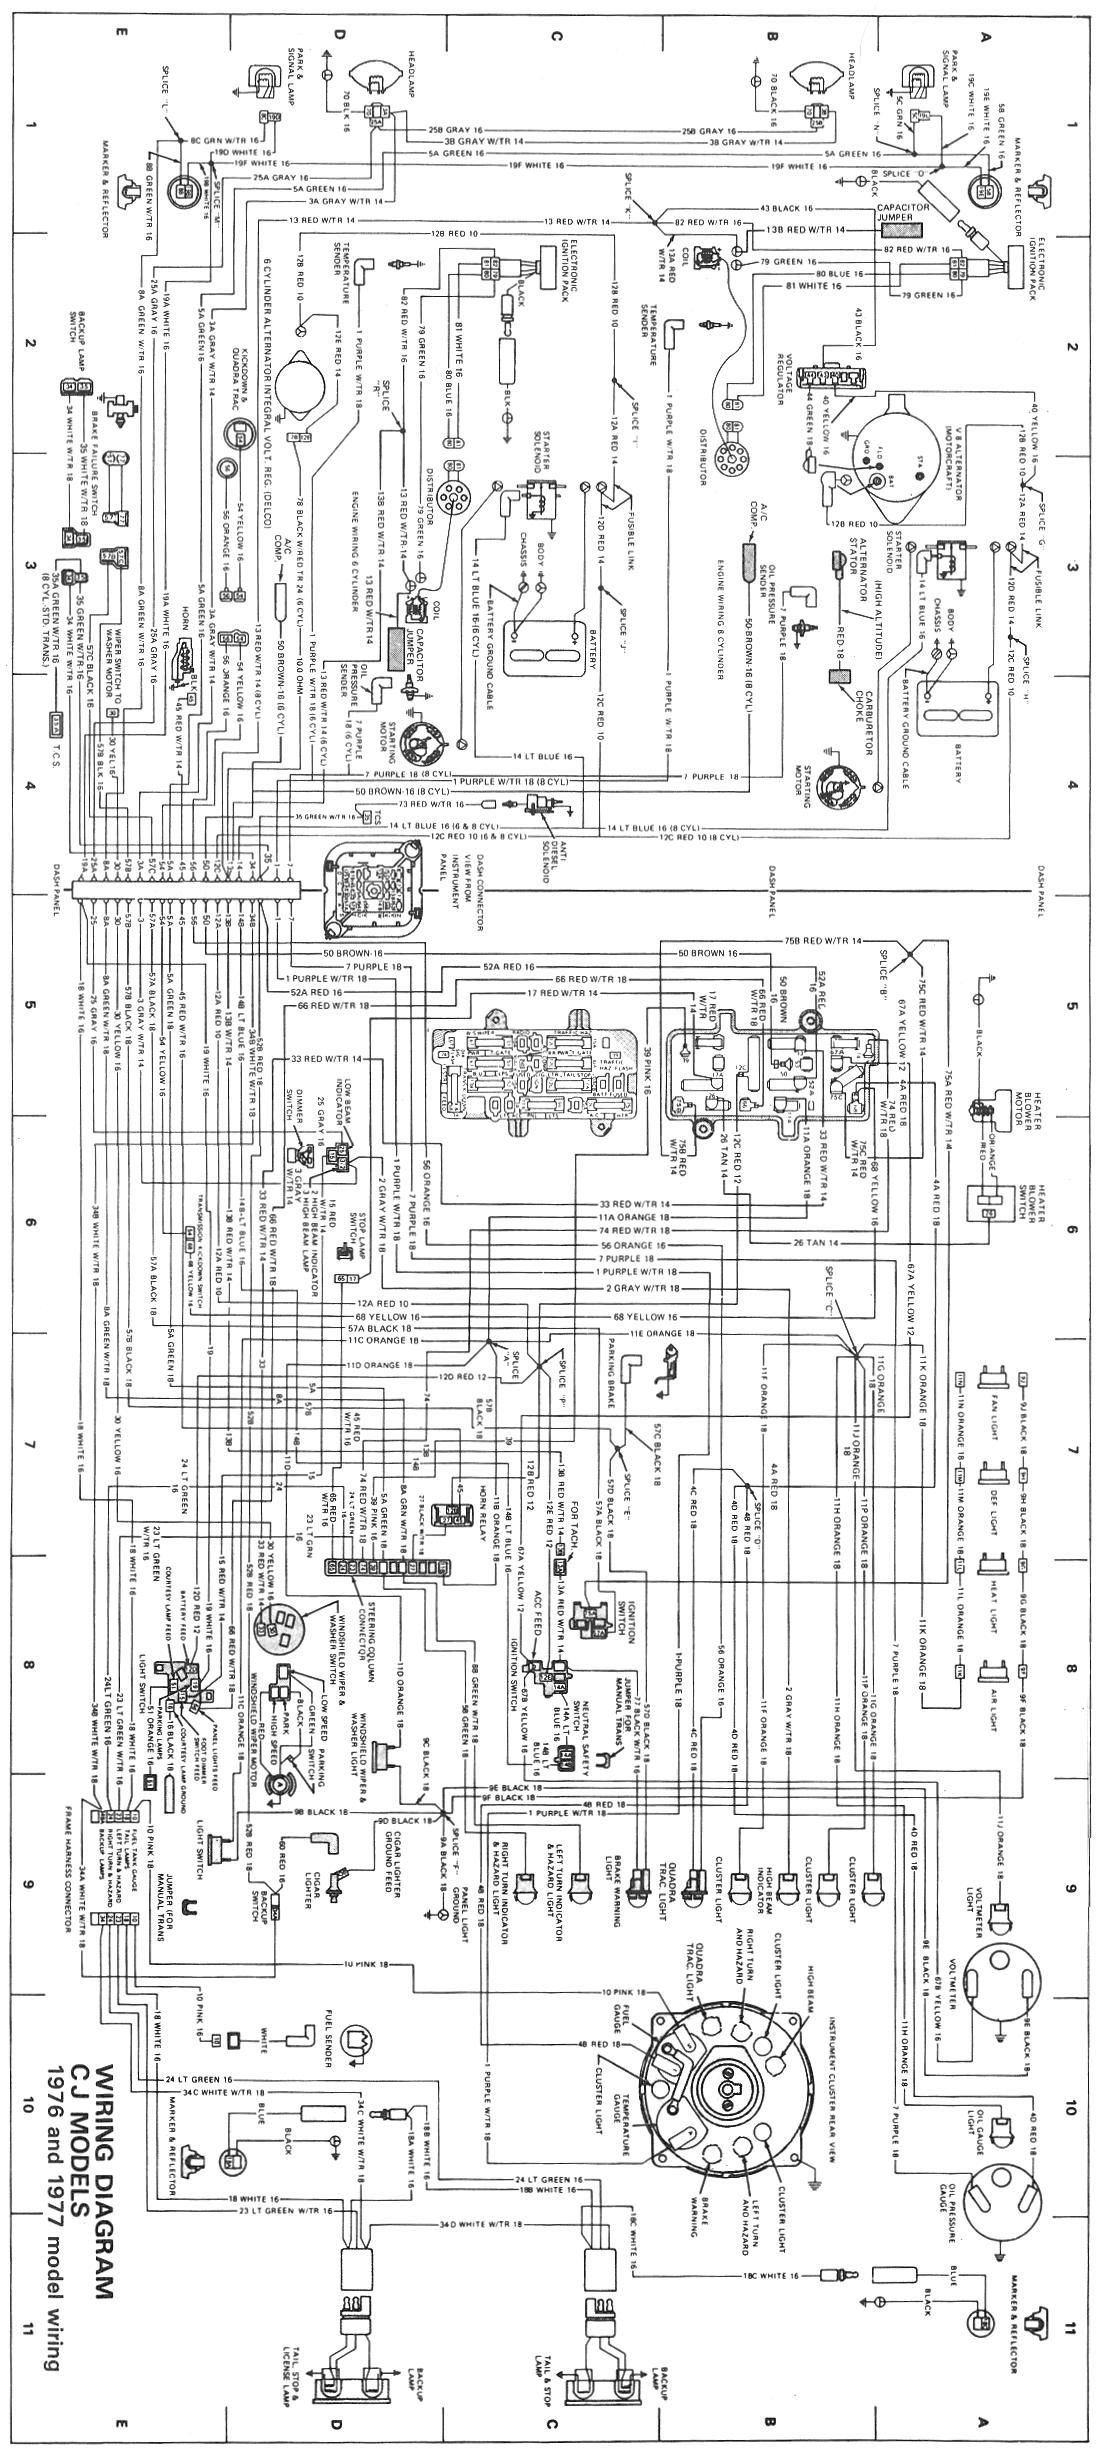 8d25ded6e3673519e155875e09844e5e cj wiring diagram 1976 1977 jpg 1,100�2,459 pixels 1976 jeep cj5 Painless Wiring Harness Diagram at webbmarketing.co